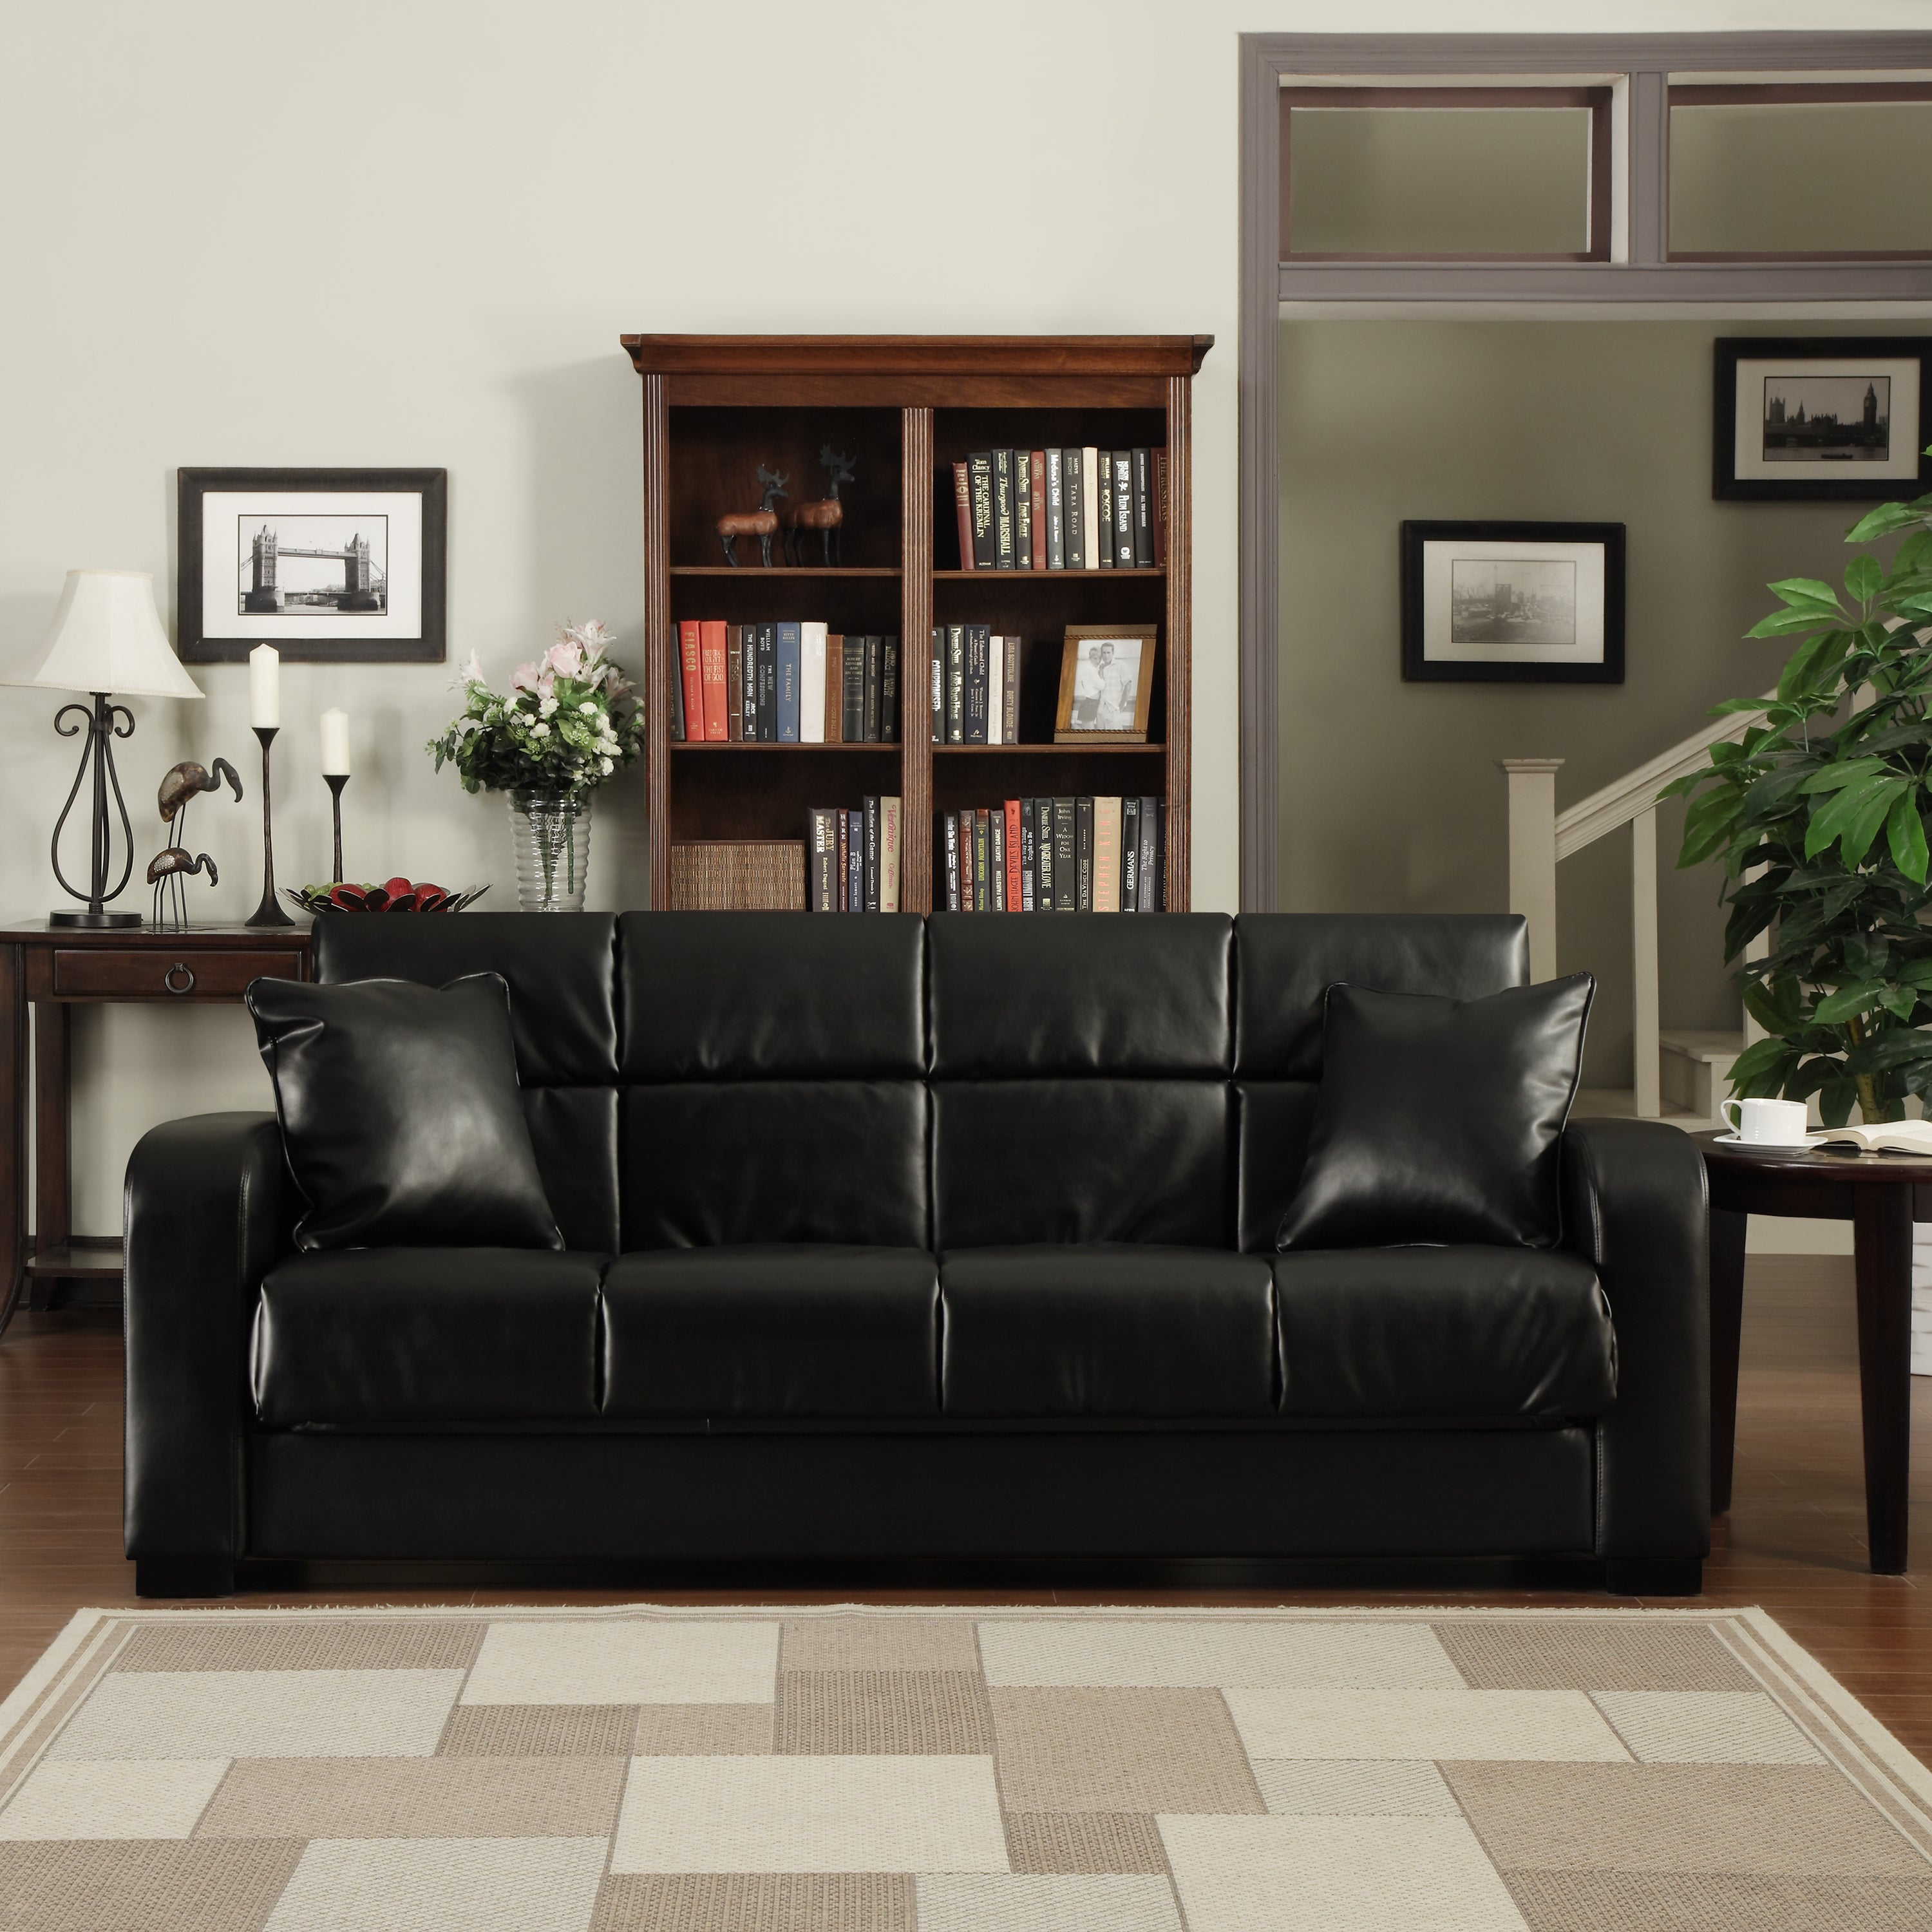 Handy Living Turco Convert A Couch Black Renu Leather Futon Sofa Sleeper On Ships To Canada 7873551